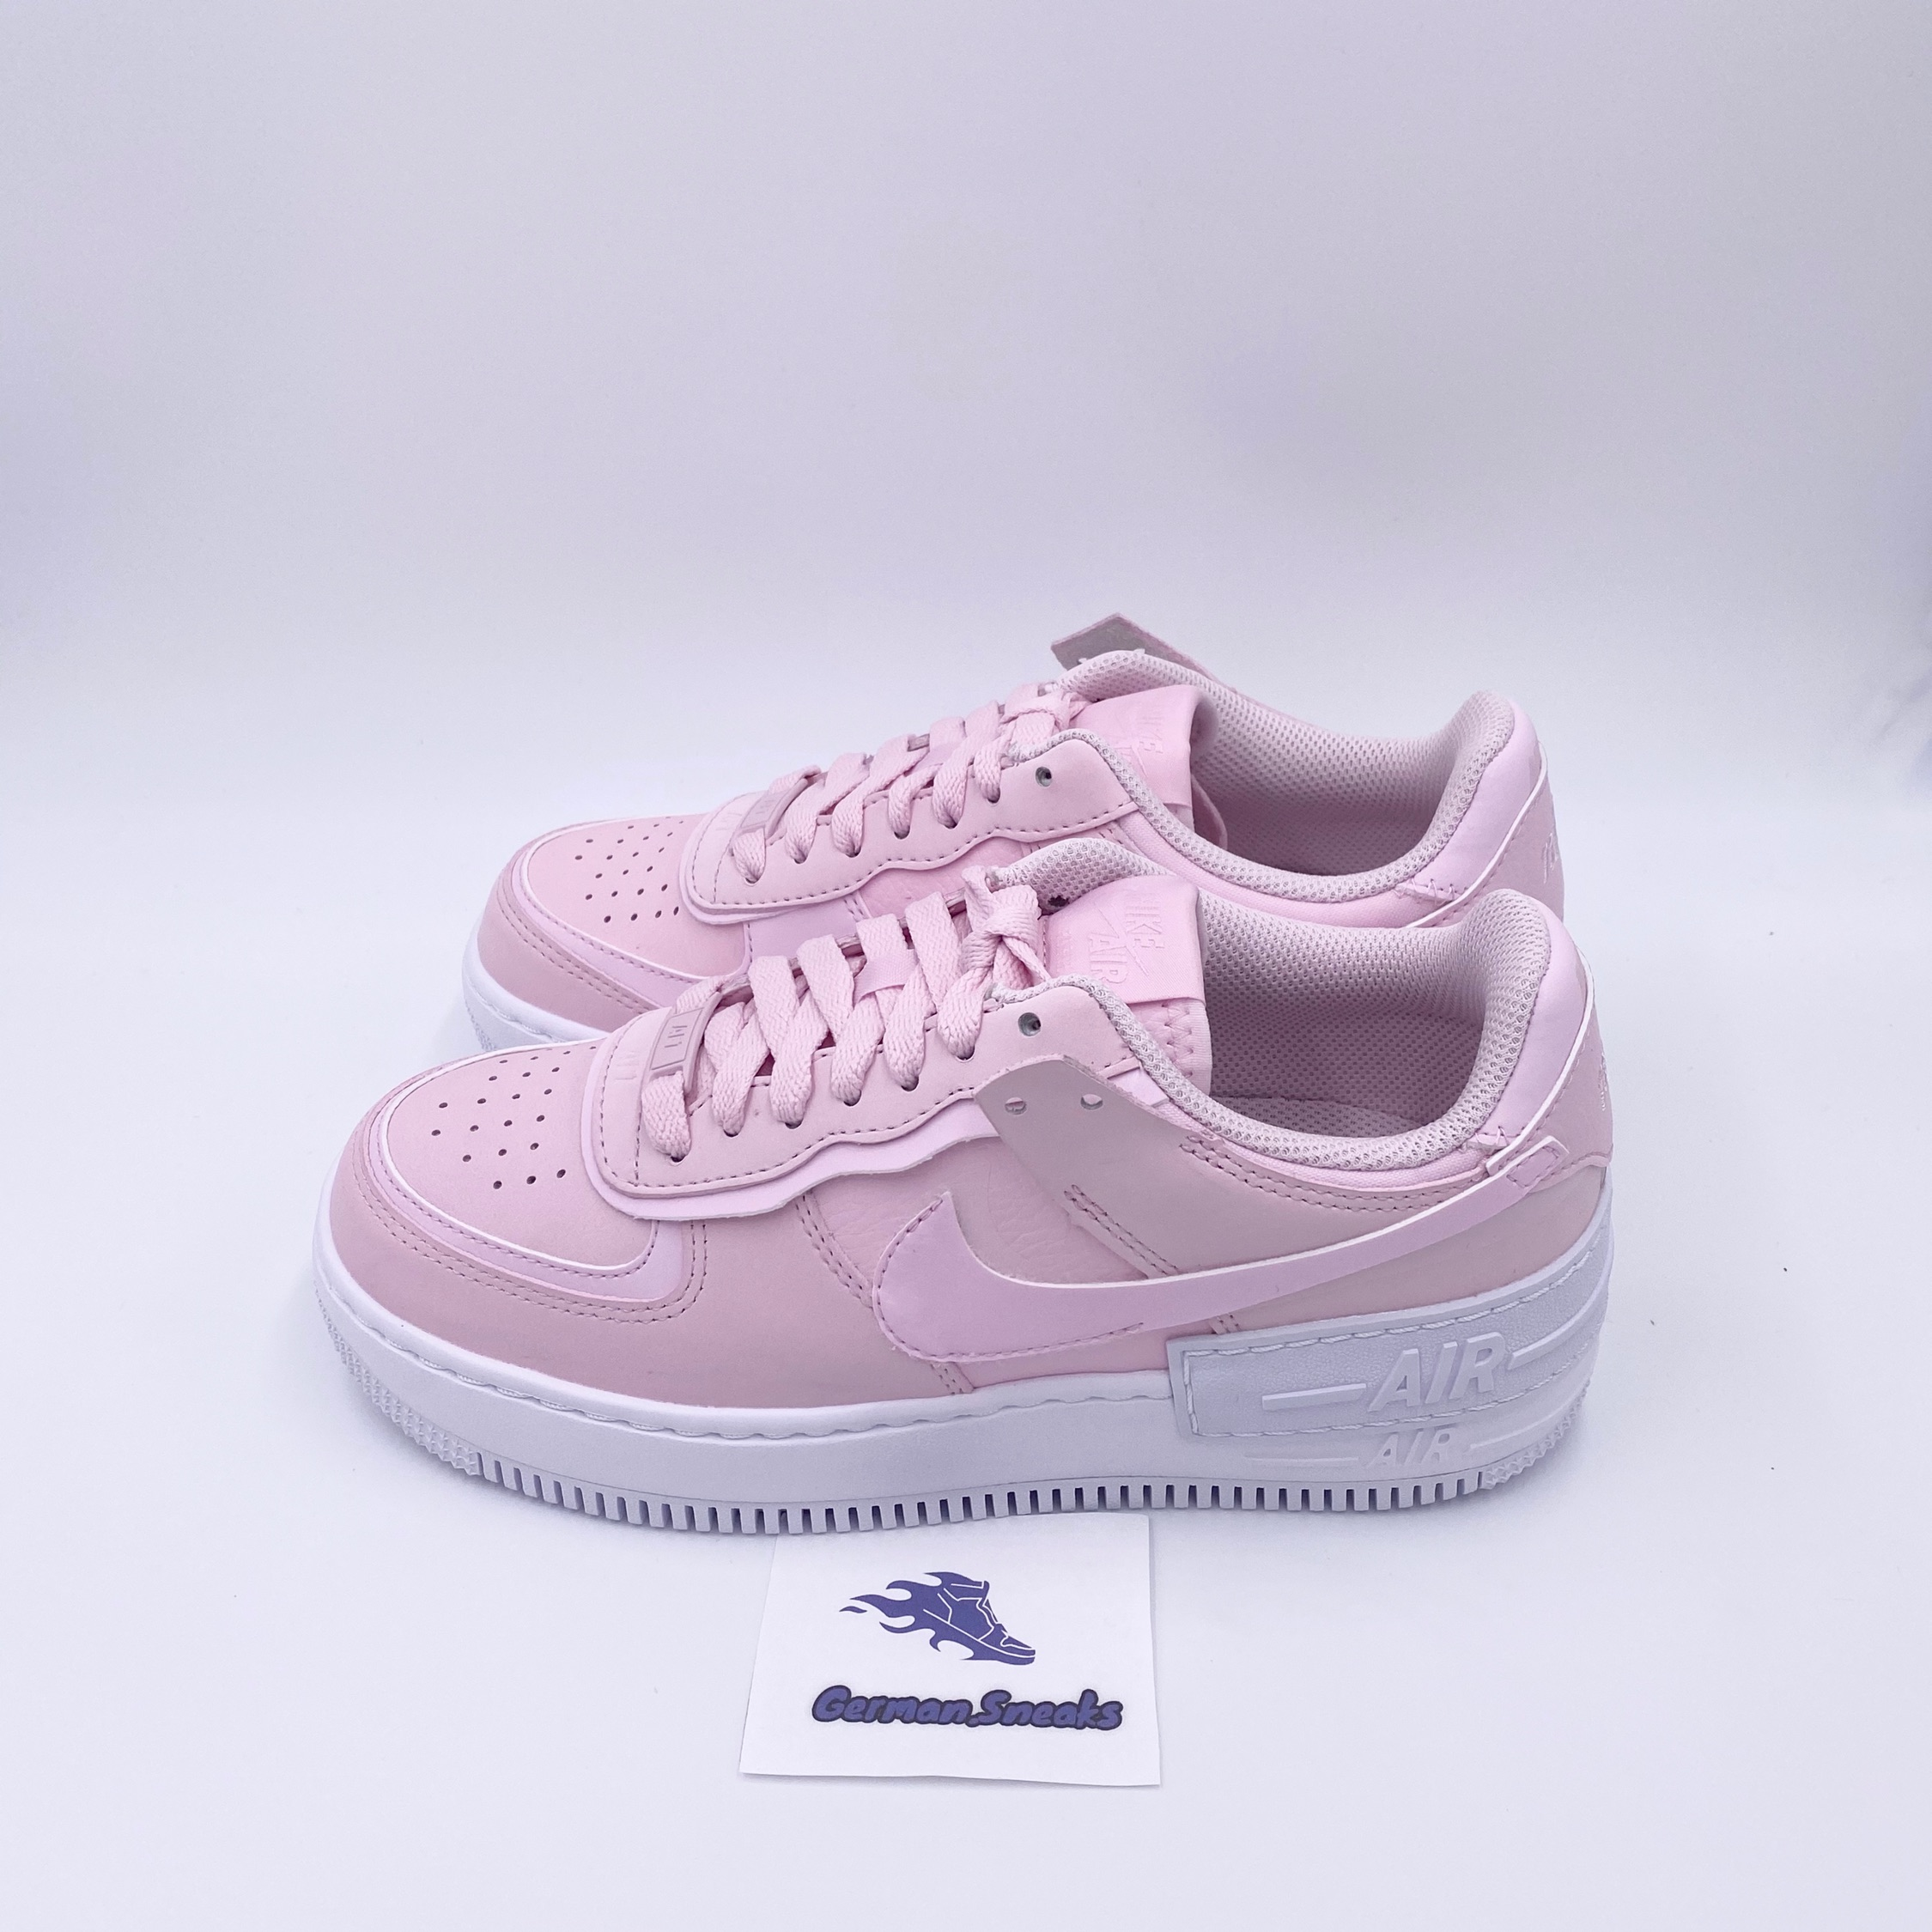 Nike Air Force 1 Shadow Pink Foam